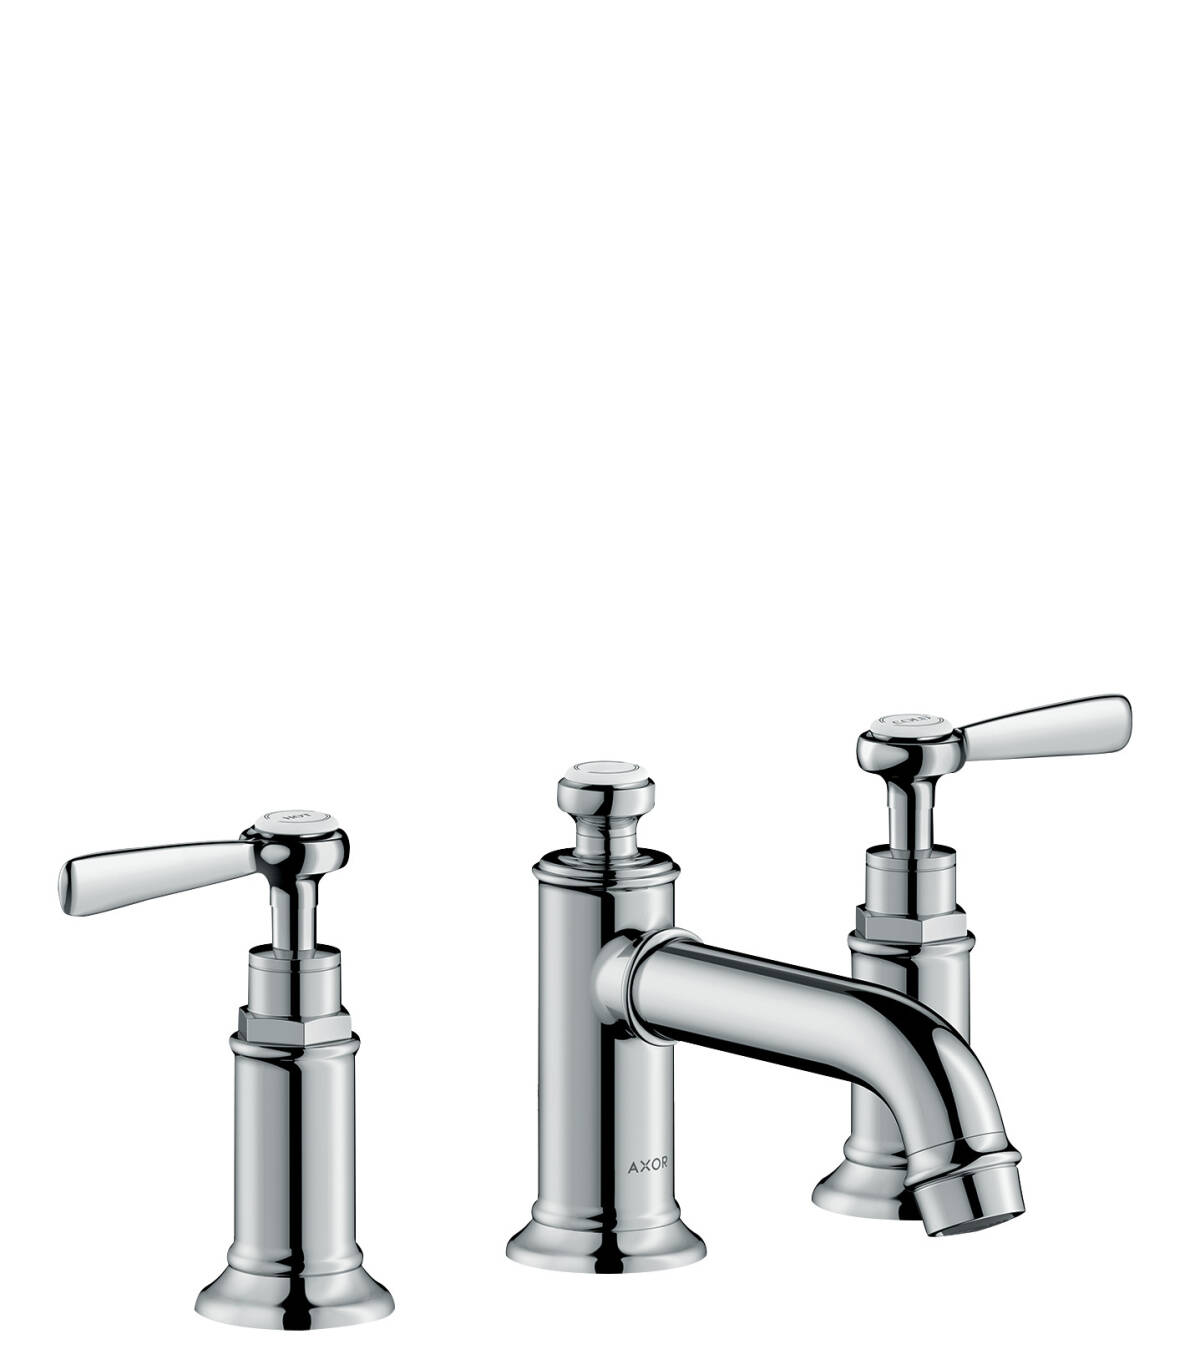 3-hole basin mixer 30 with lever handles and pop-up waste set, Chrome, 16535000